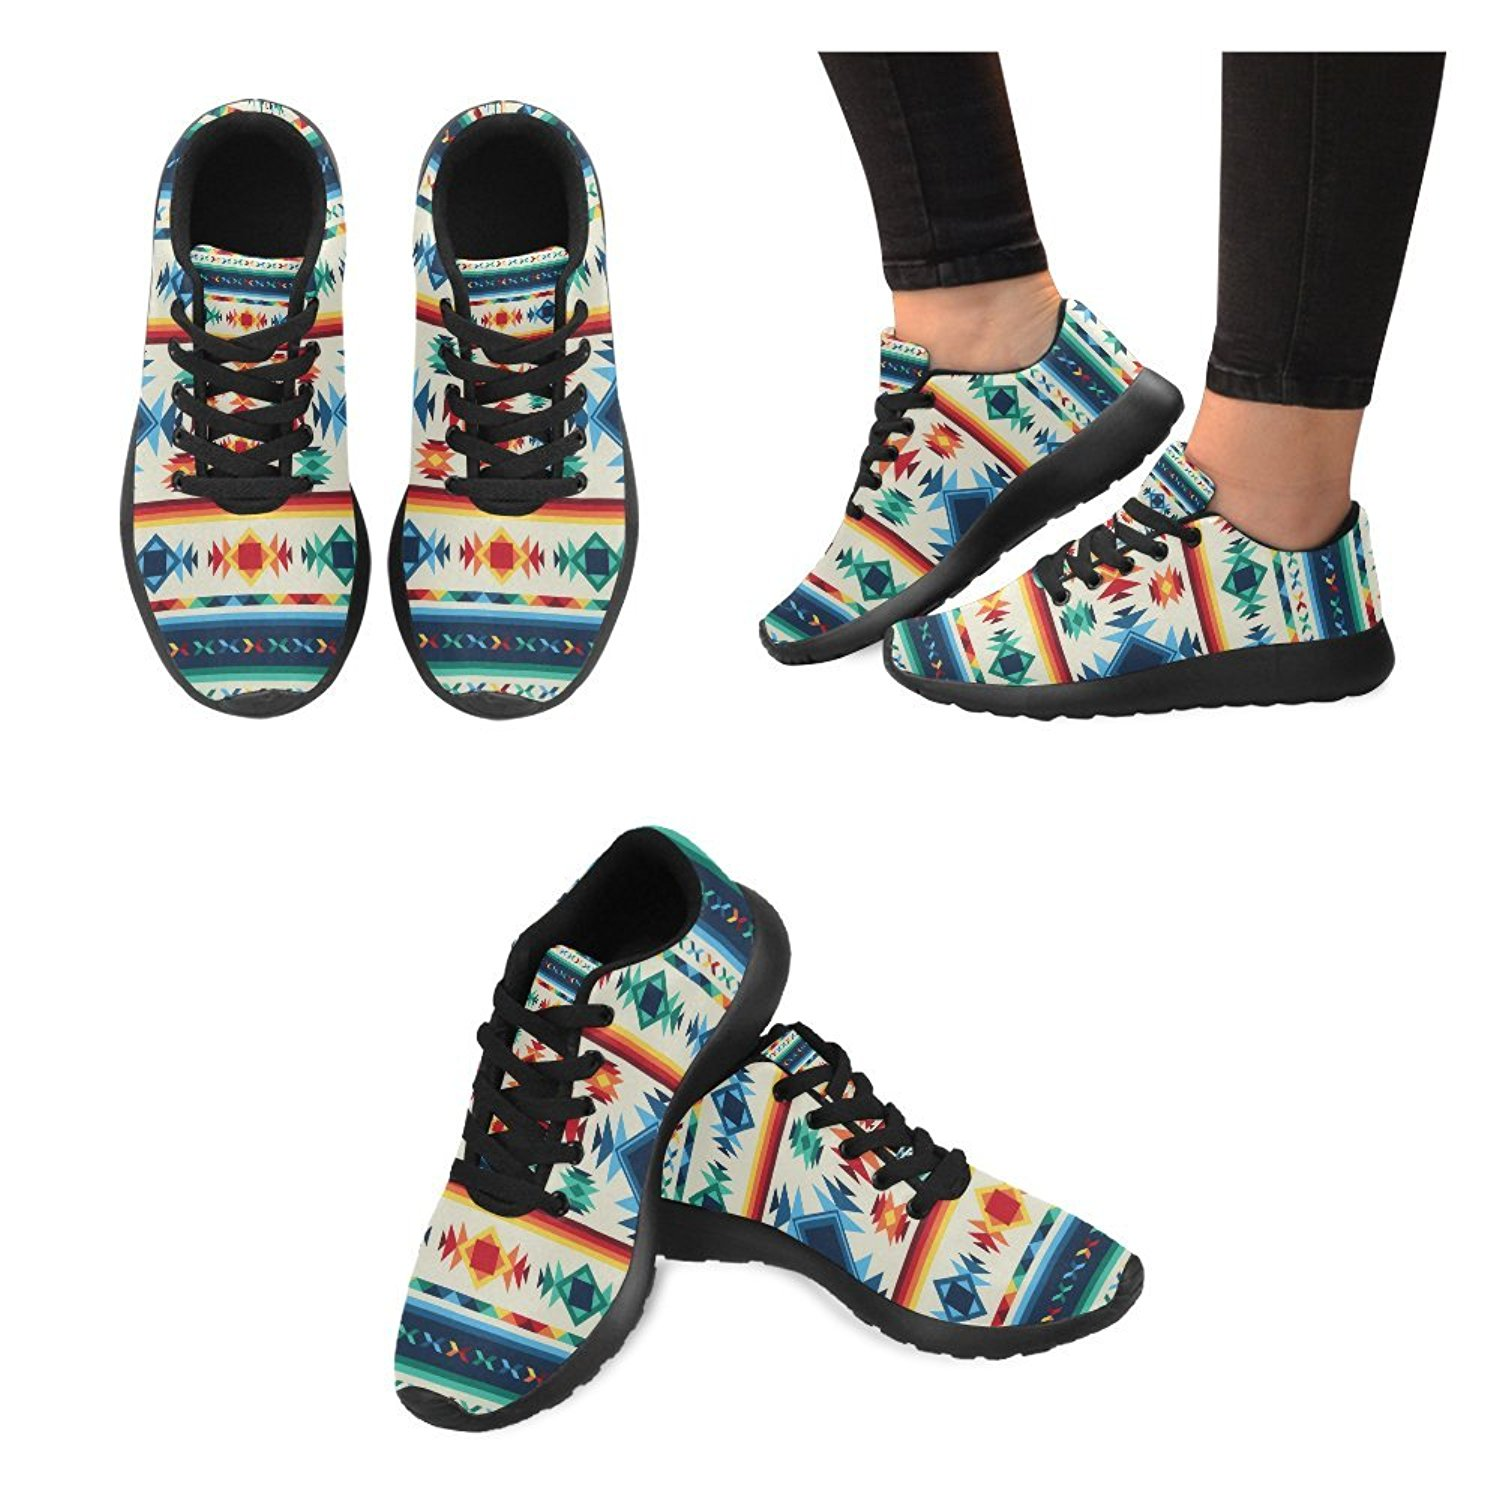 Womens high Heel Wedge Pumps Shoes Aztec Colorful Flowers Geometry Ethnic Pattern prin on